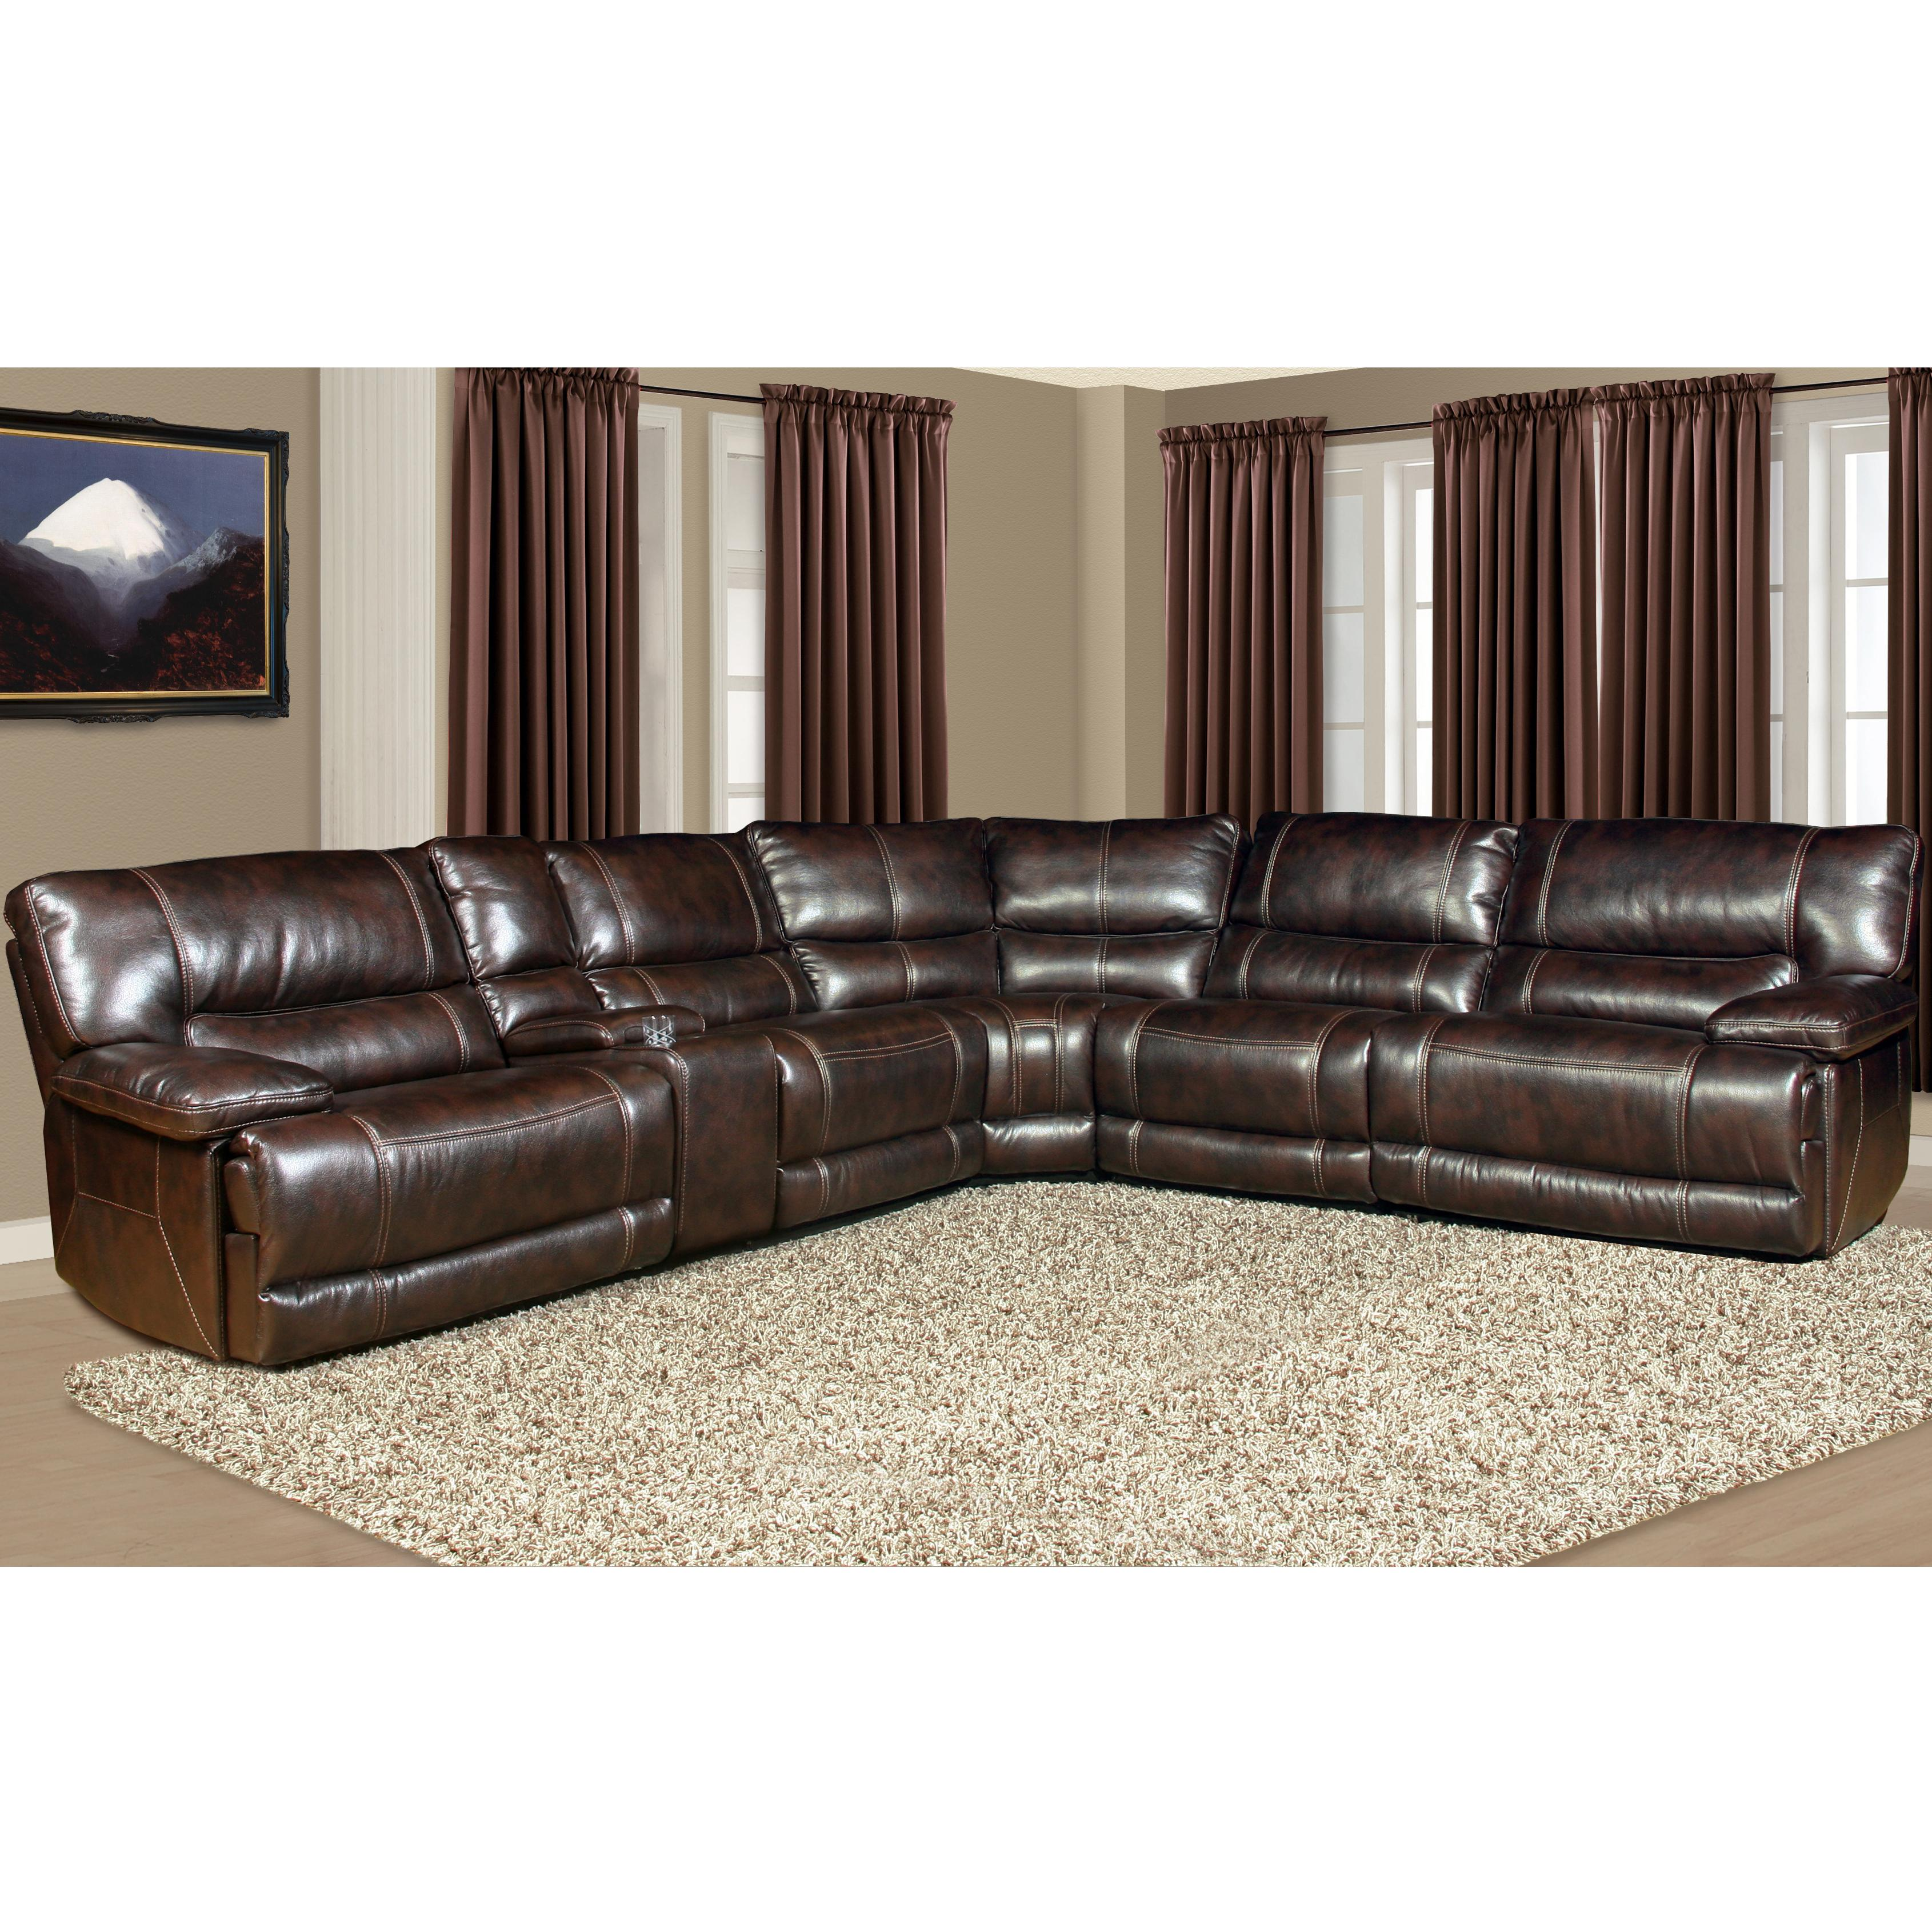 power reclining sofa with cup holders faux leather replacement covers parker living pegasus mpeg packm nu 5 seater